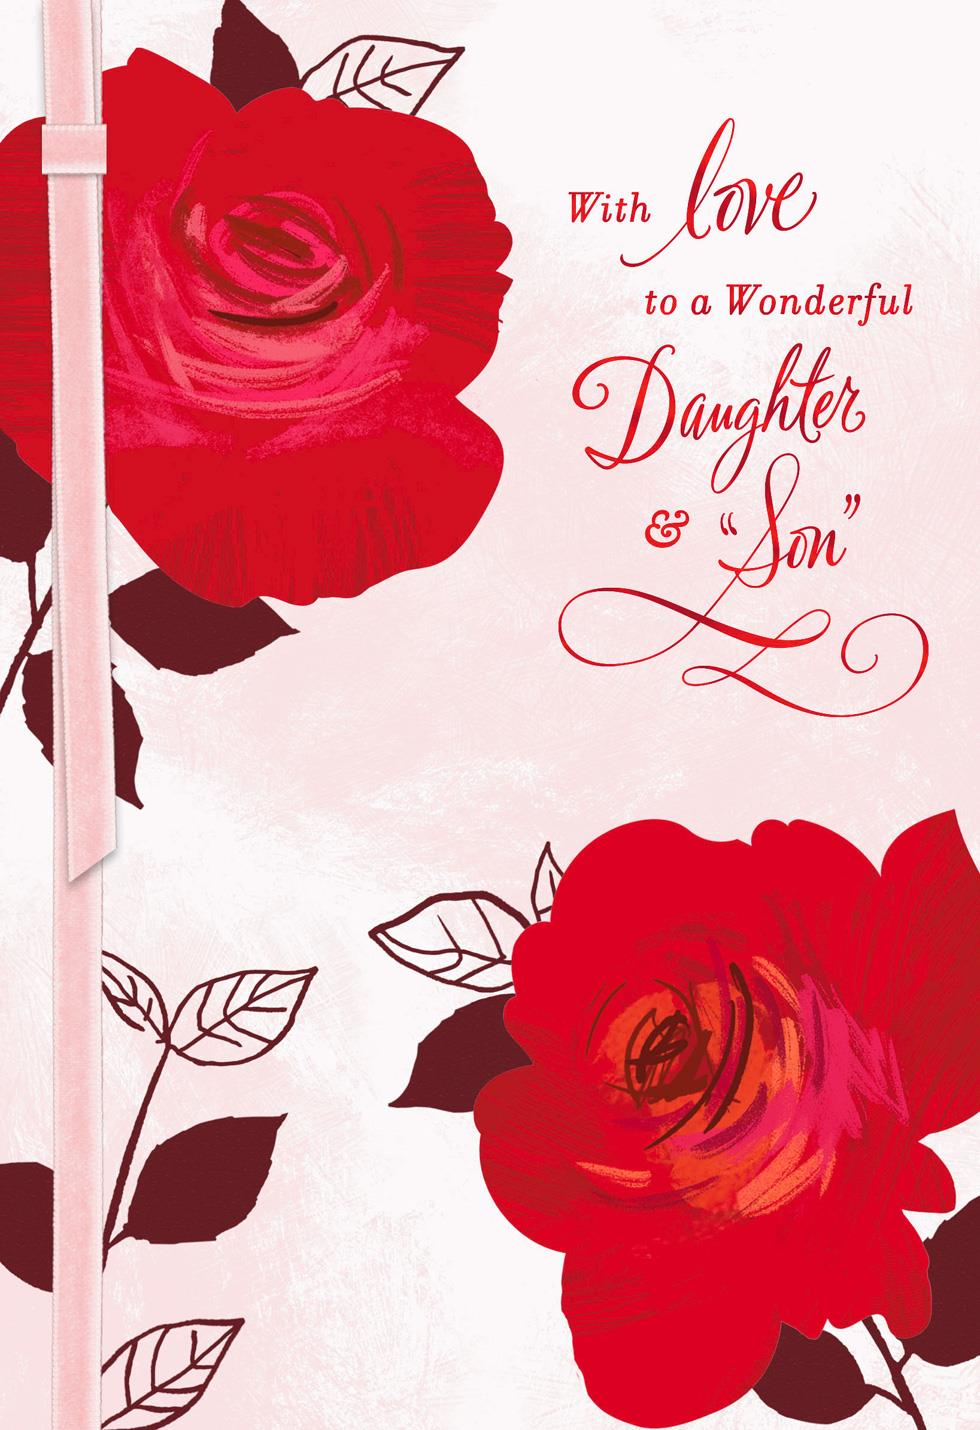 Two roses valentines day card for daughter and son in law two roses valentines day card for daughter and son in law m4hsunfo